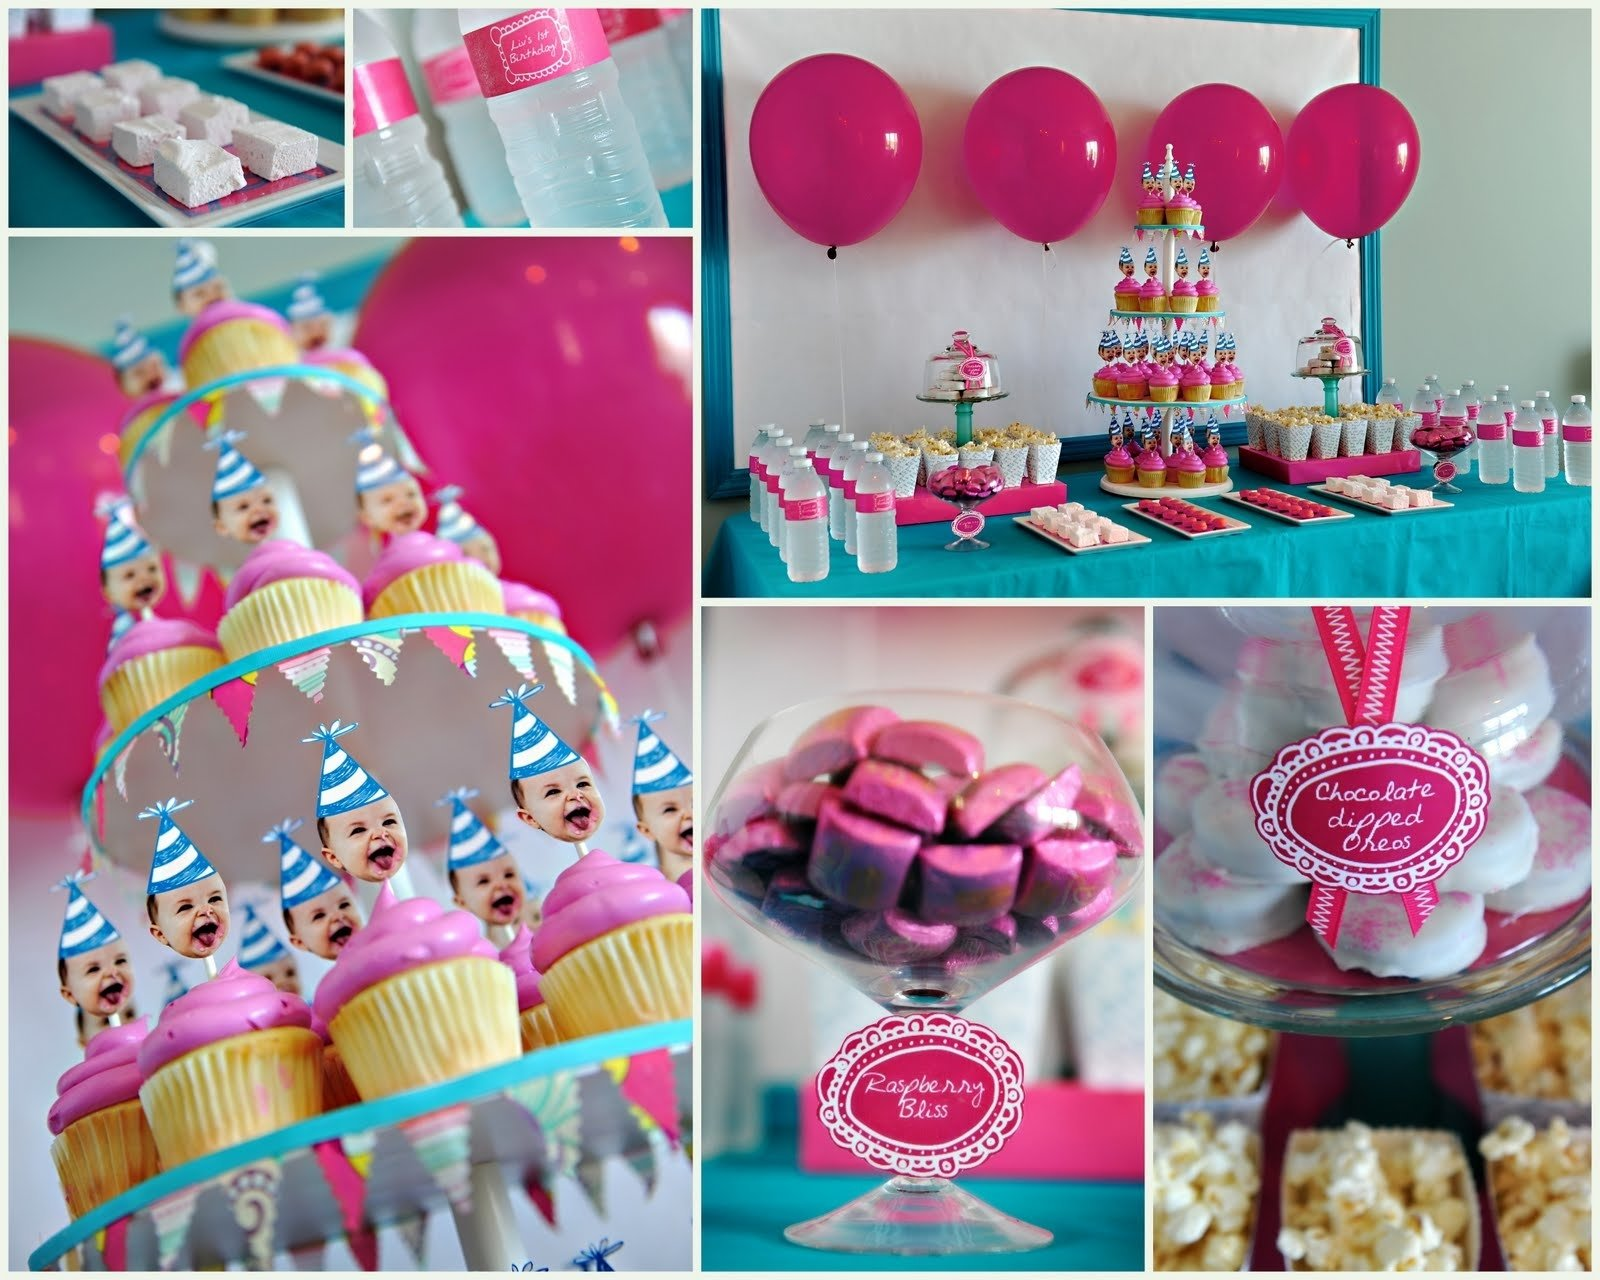 10 Cute Ideas For A 1 Year Old Birthday Party themes birthday 1 year old birthday party activity ideas with 8